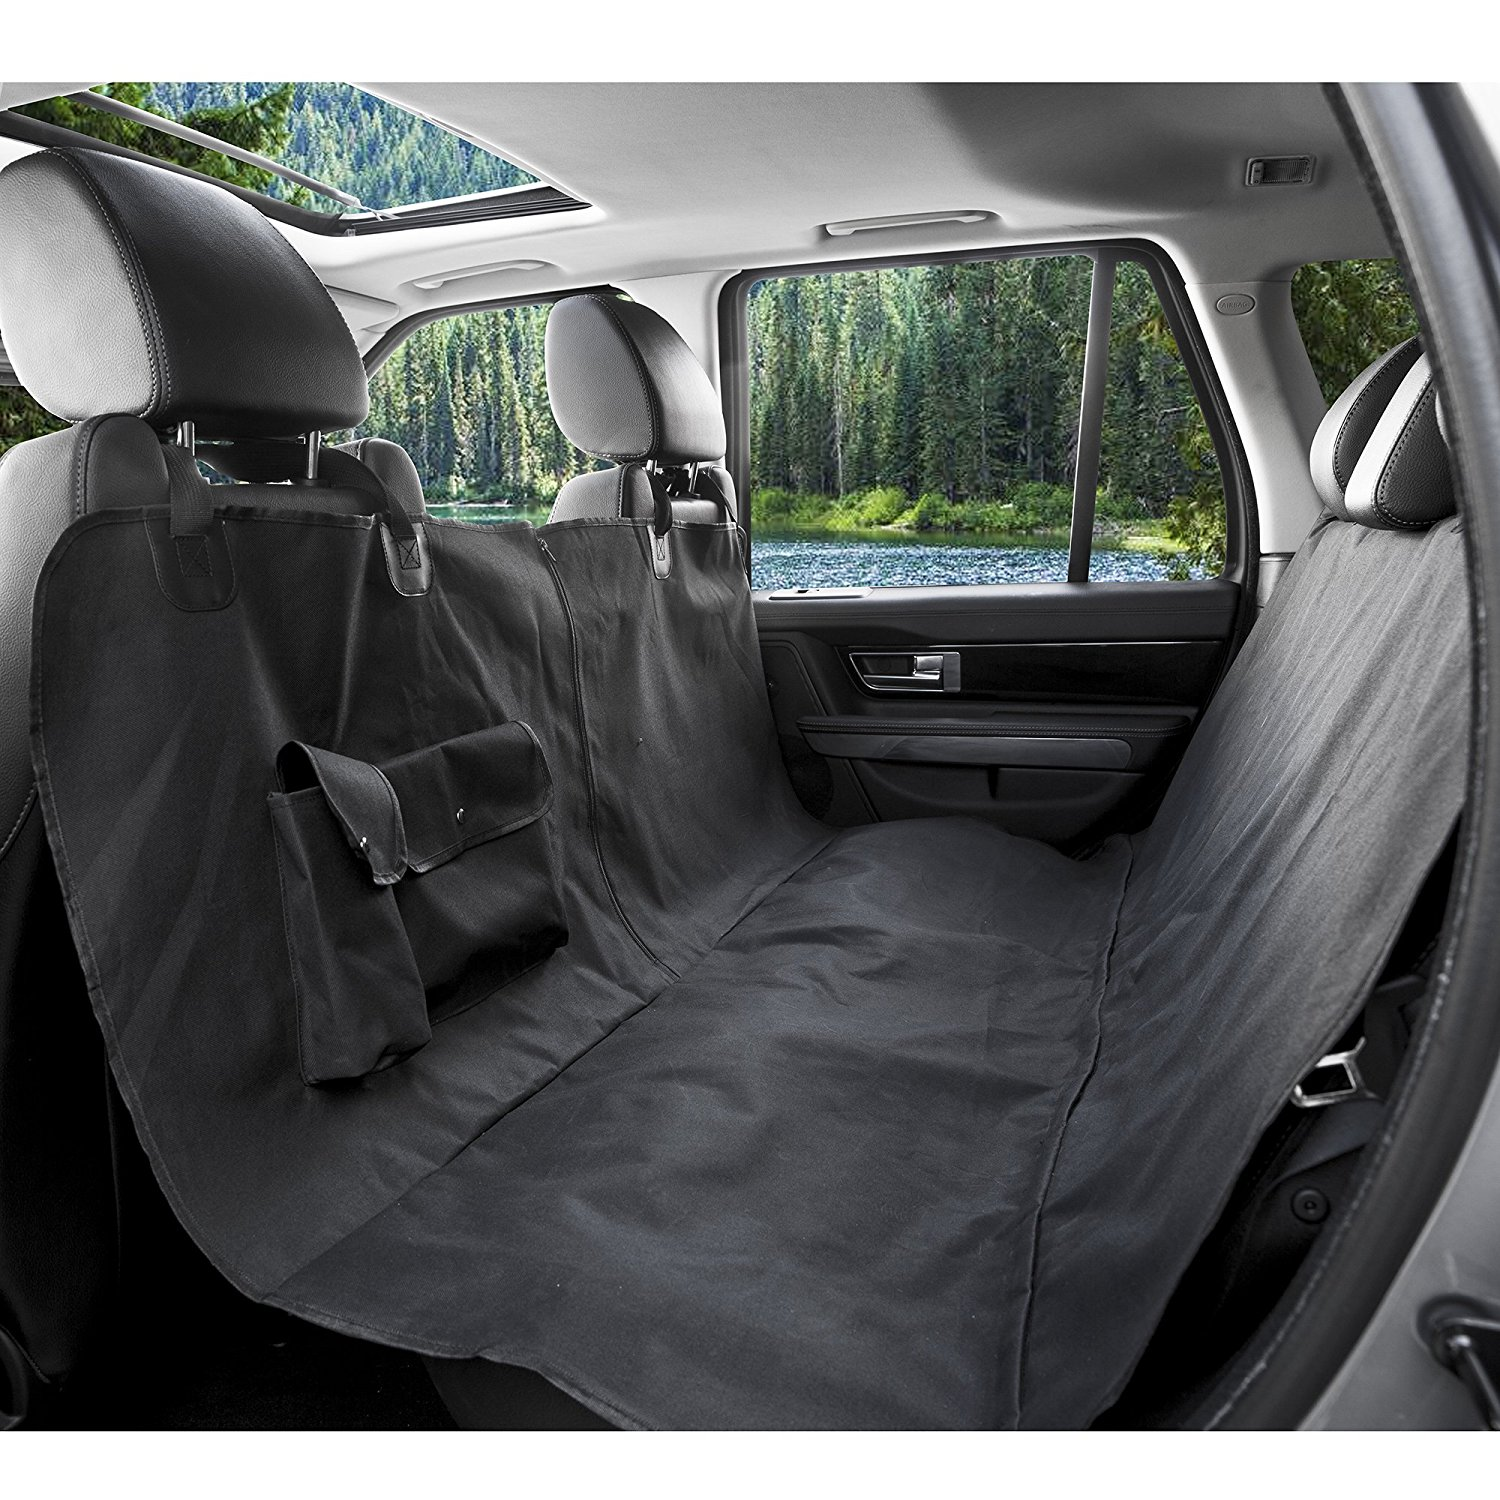 Amazing Us 29 98 Barksbar Original Pet Seat Cover For Cars Black Waterproof Hammock Convertible In Dog Carriers From Home Garden On Aliexpress Onthecornerstone Fun Painted Chair Ideas Images Onthecornerstoneorg